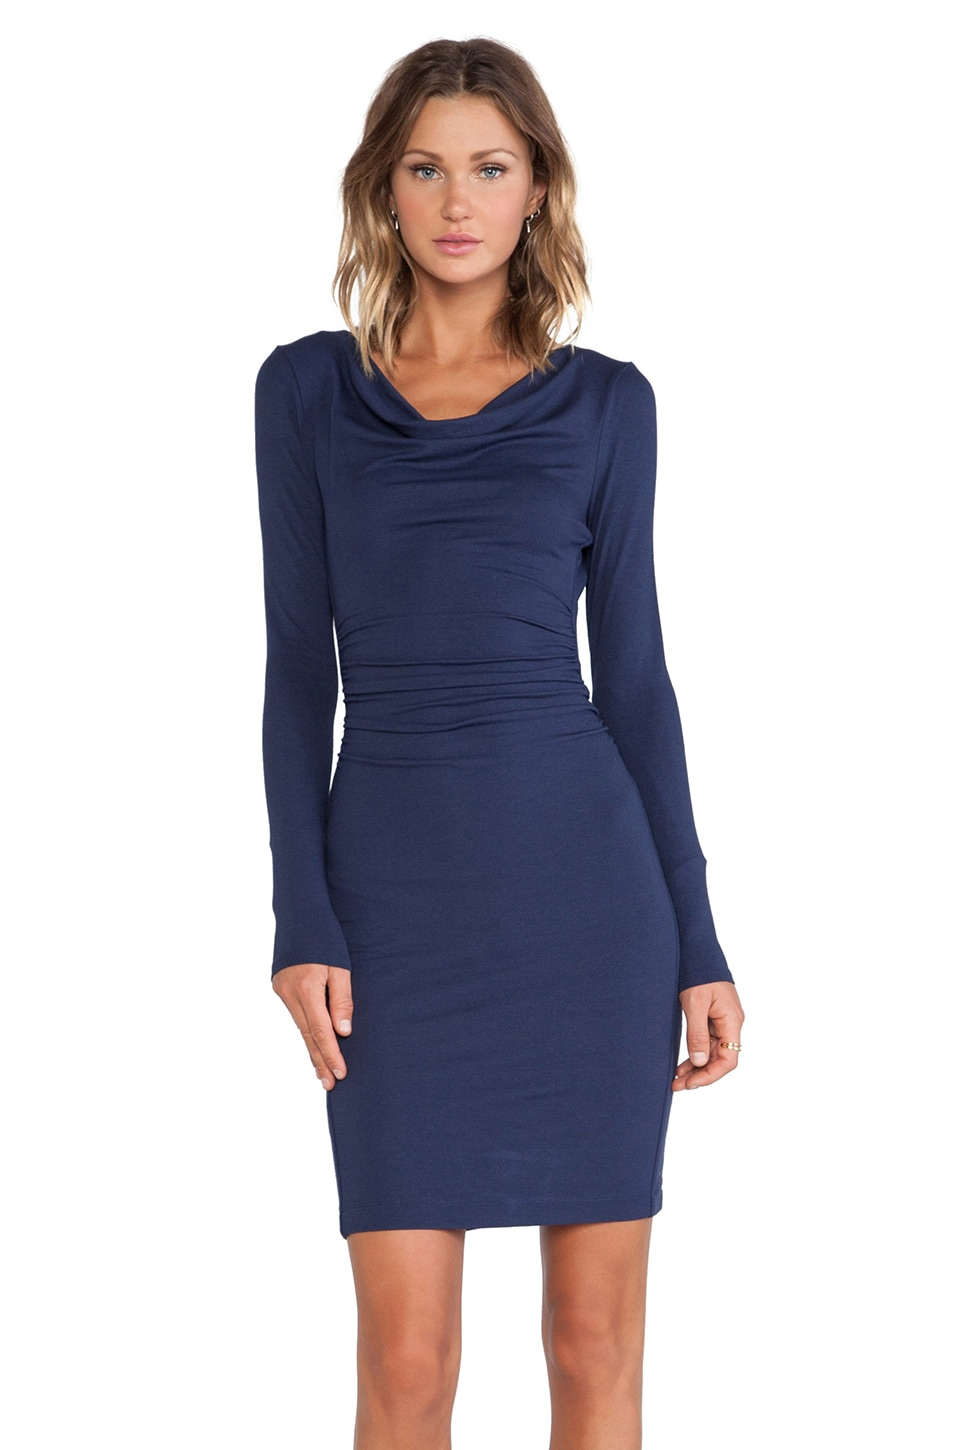 BCBGMAXAZRIA Anyika Long Sleeve Dress in Dark Navy